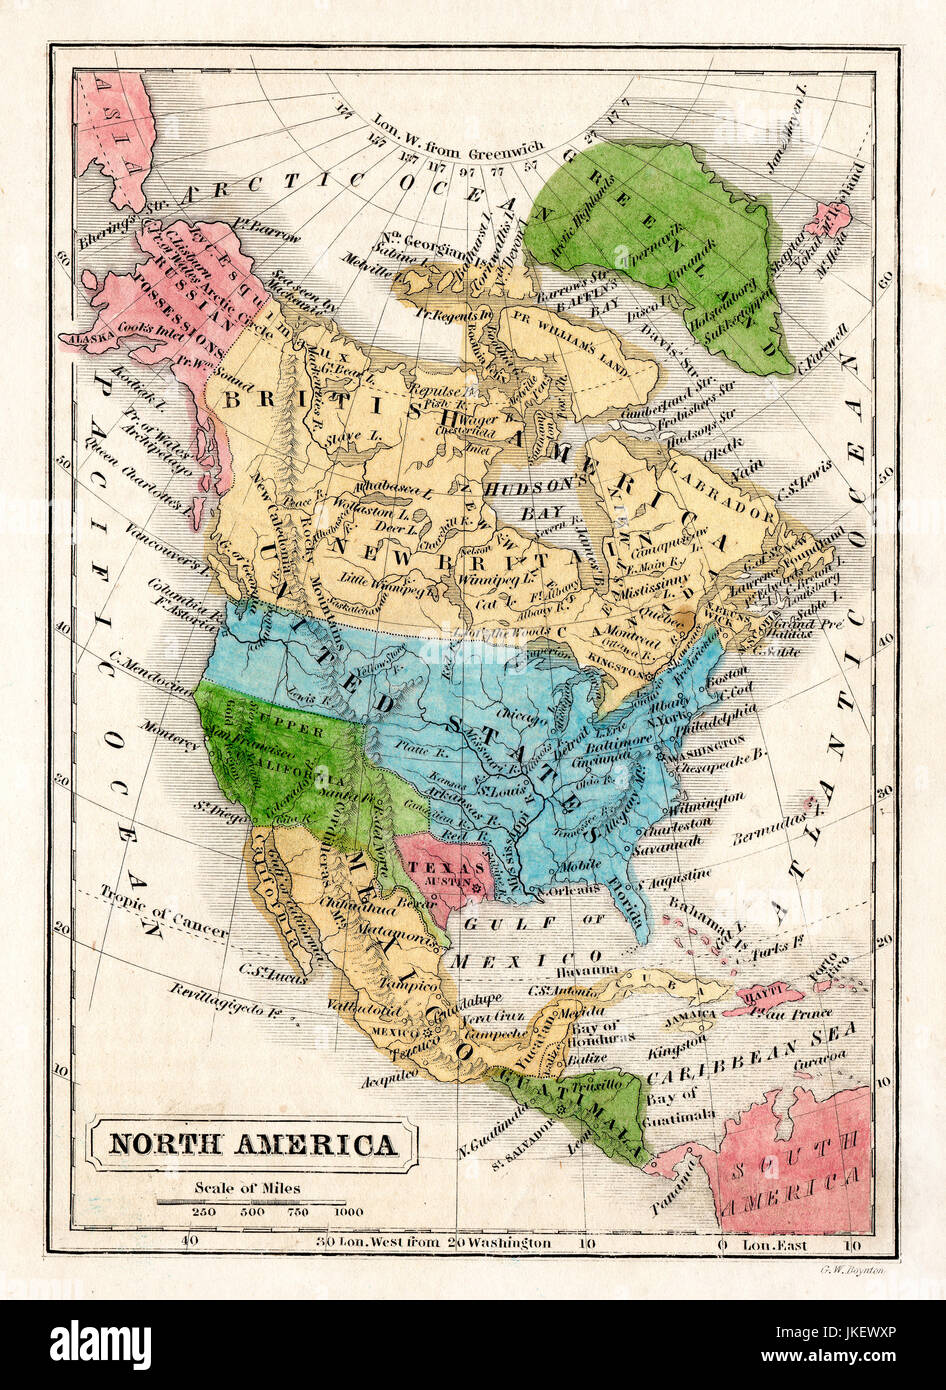 1845 Boynton Map of the North America showing the Republic of